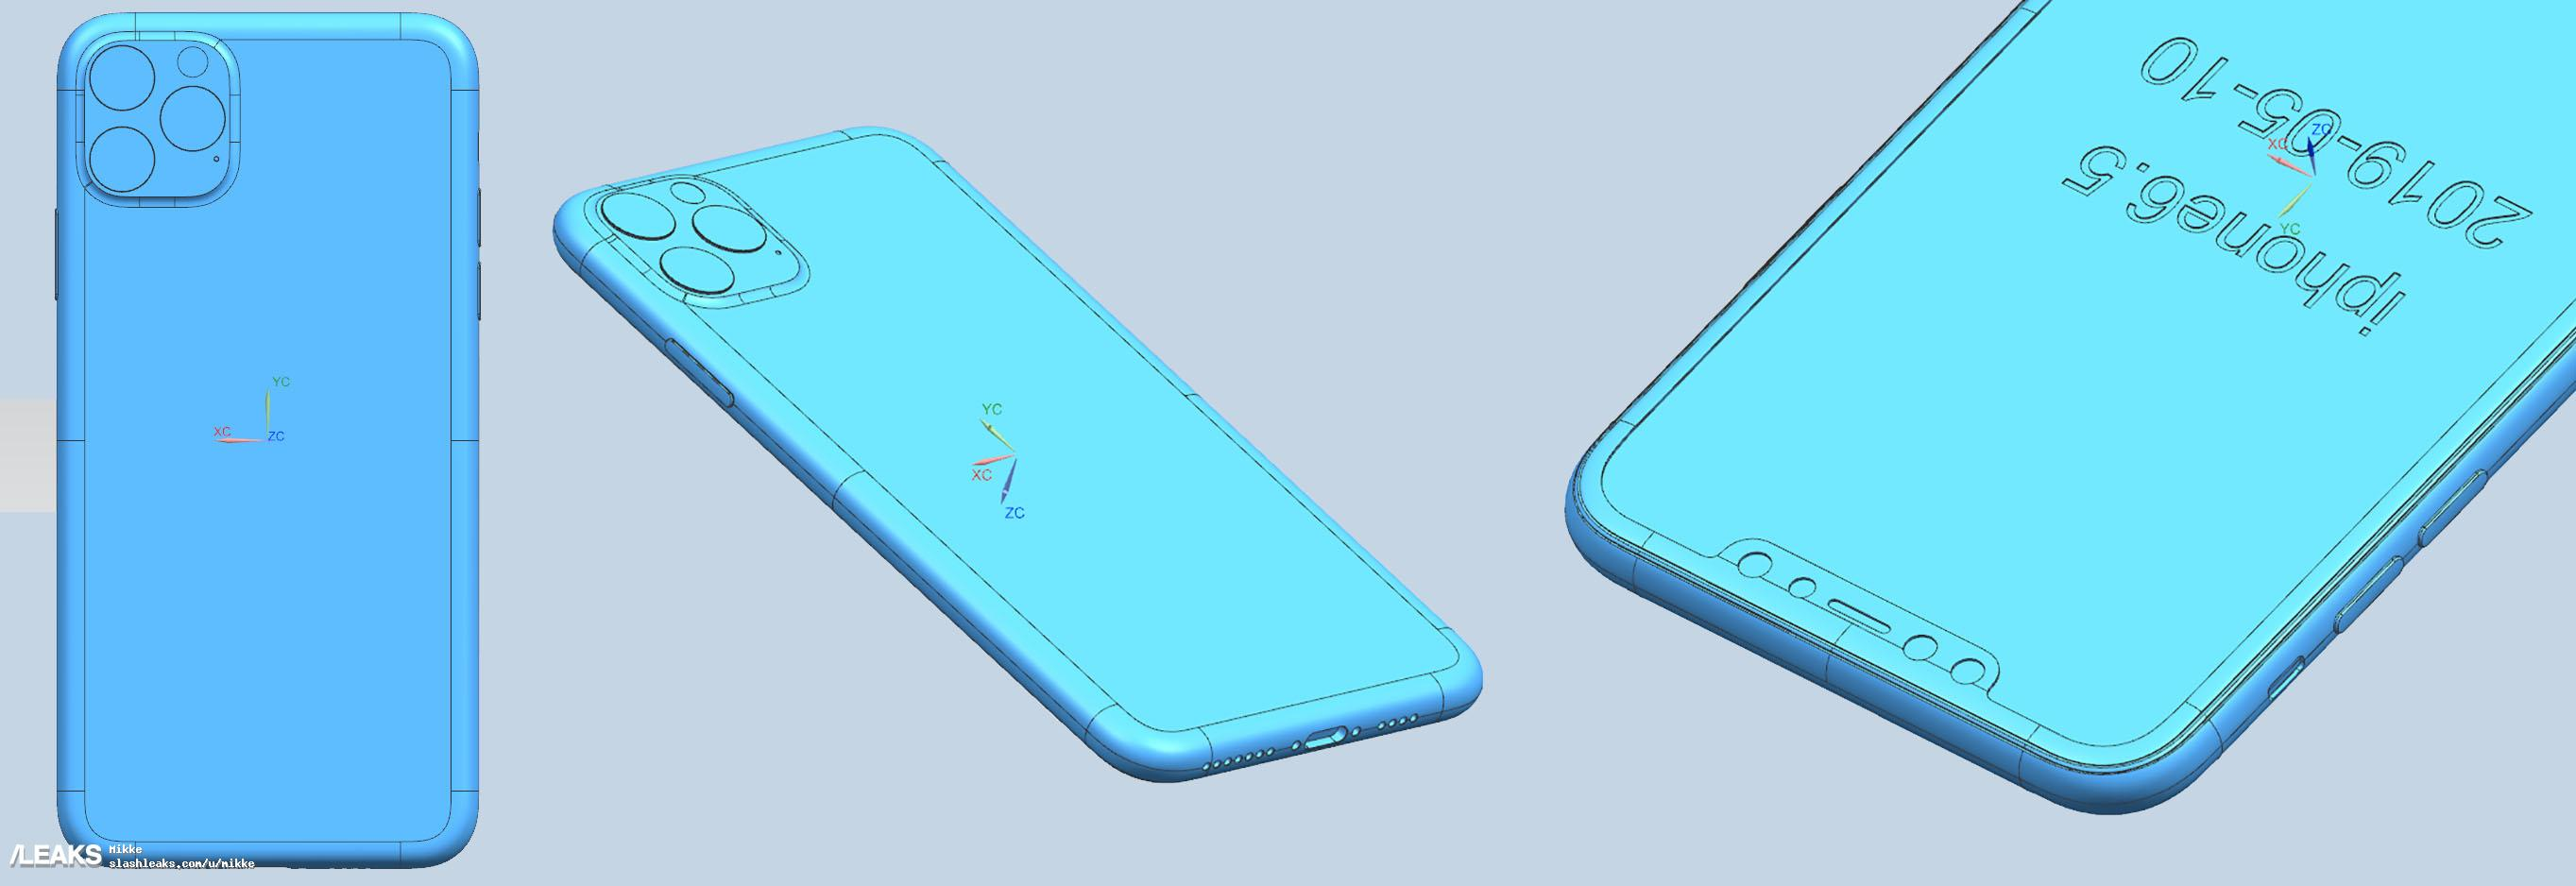 Iphone 2019 Cad Renders Image Leaks Img 2